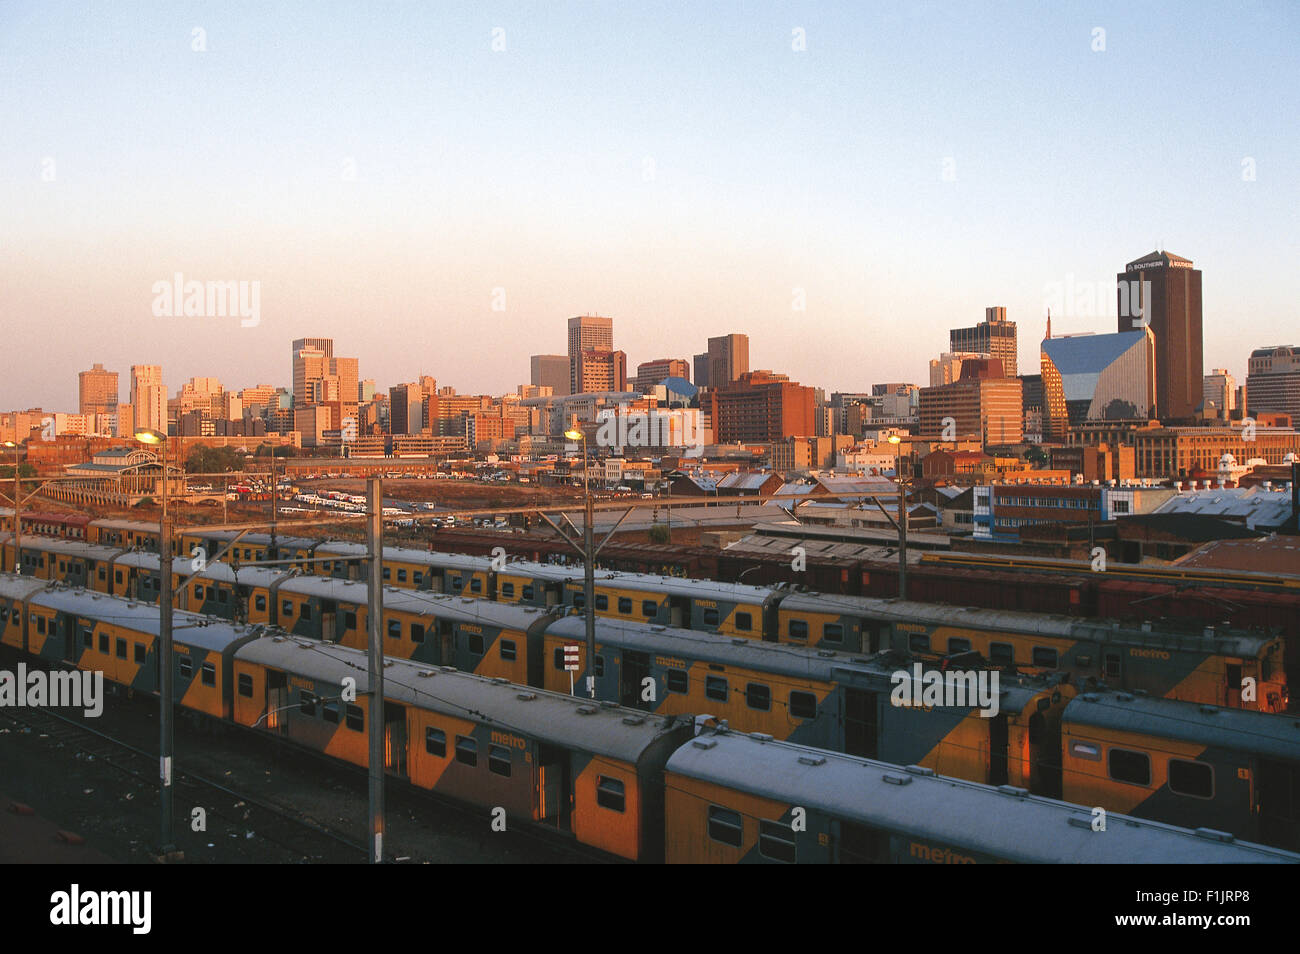 Johannesburg skyline with trains and railway station in foreground. Johannesburg, Gauteng Province, South Africa, - Stock Image